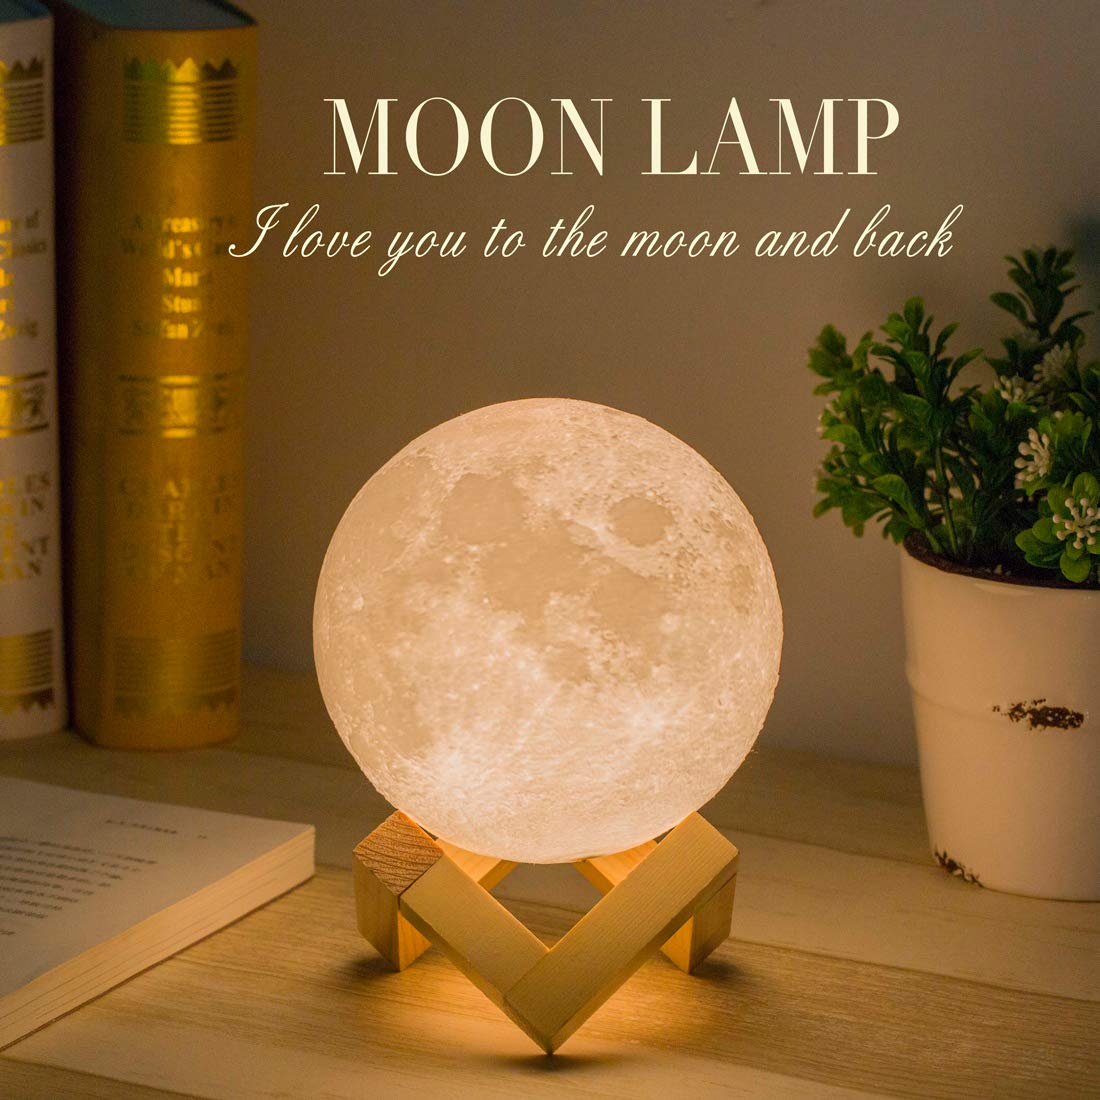 Balkwan Moon Lamp 3D Printing 4.7 inches Moon Light Dimmable with Touch Control Rechargeable Lunar Light Home Nursery Decorative Night Light for Romantic Baby Gift Sets